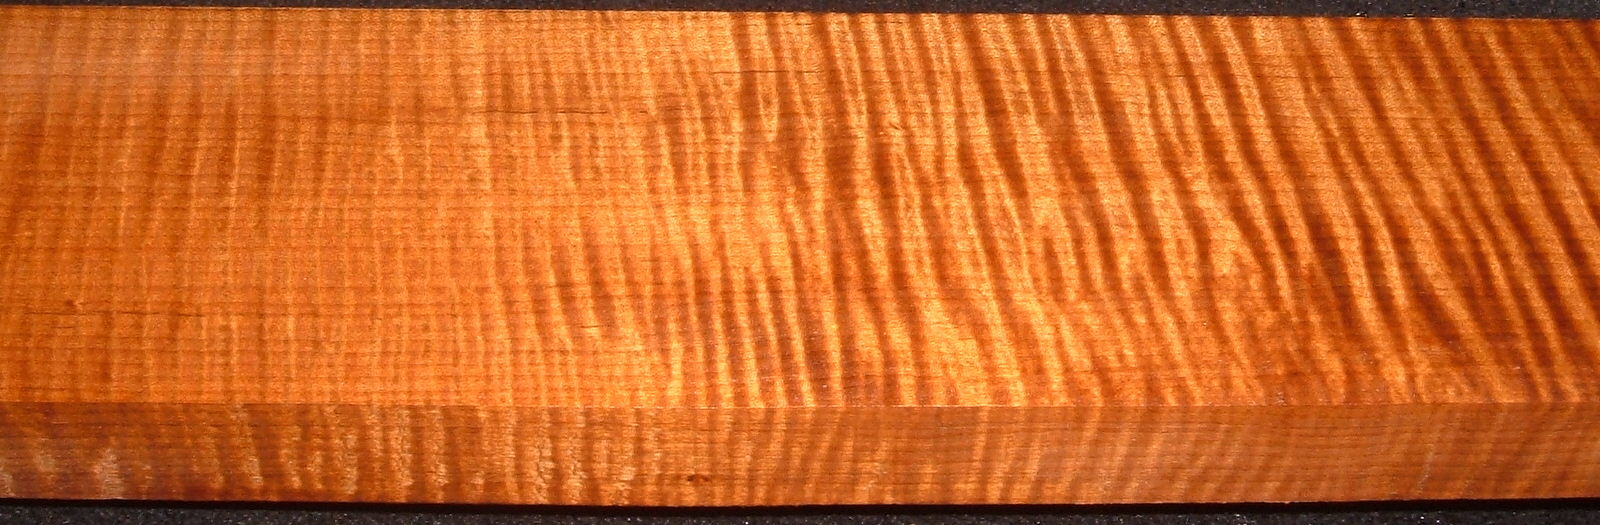 QRM2006-198, 1-1/16x3-5/8x34, Quartersawn Roasted Curly Maple